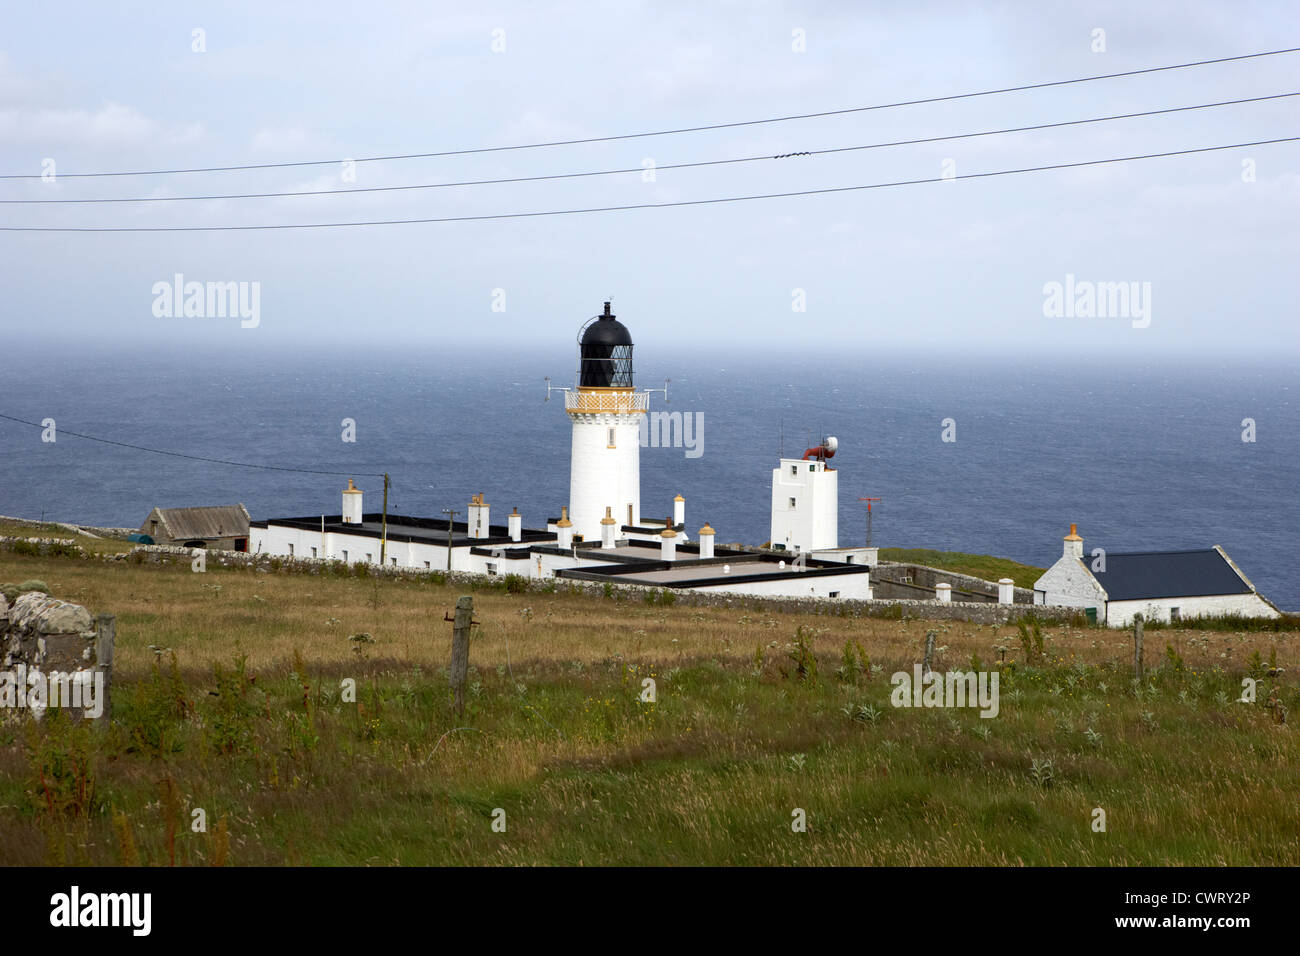 the lighthouse at dunnet head most northerly point of mainland britain scotland uk - Stock Image